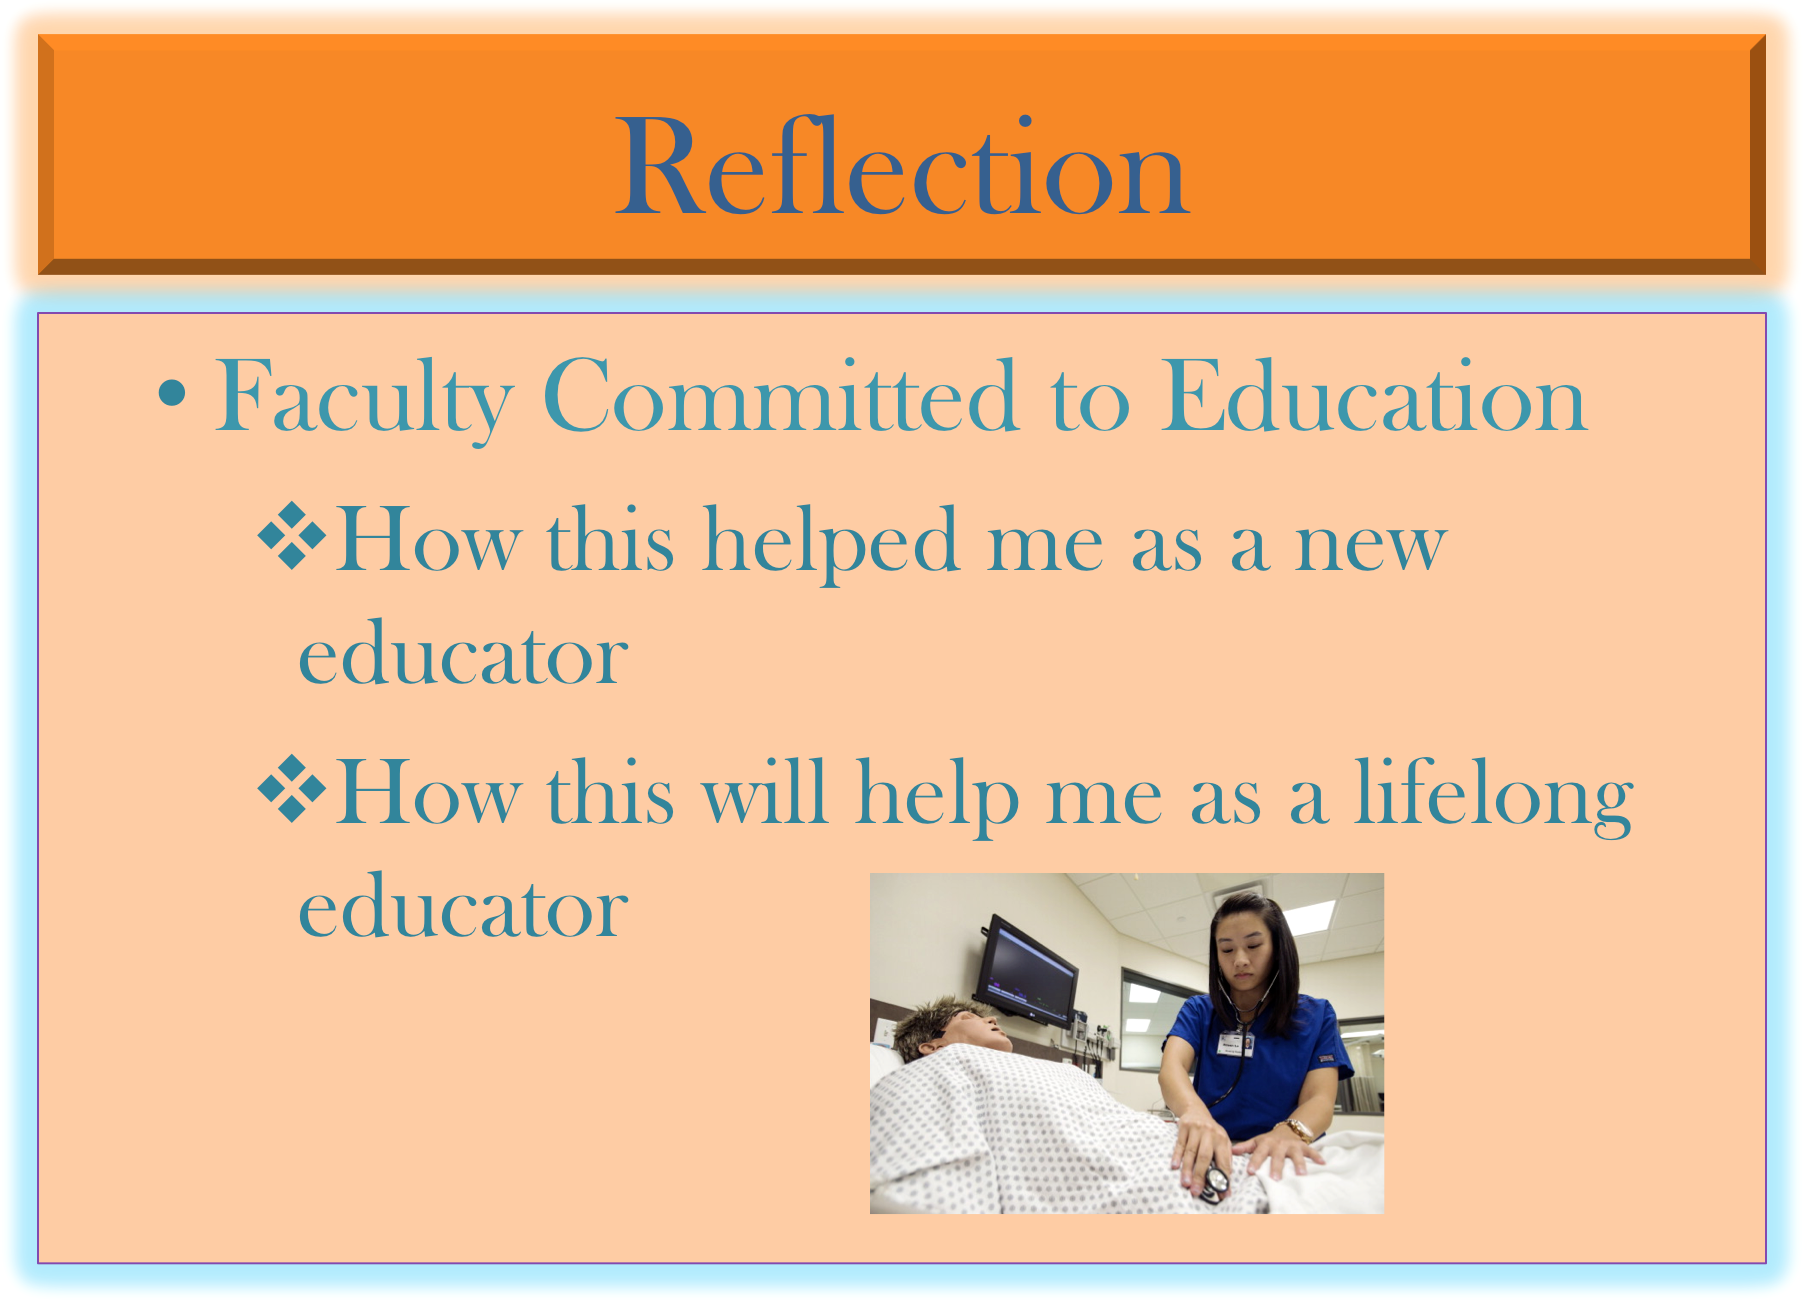 PowerPoint slide about her reflections on faculty committed to education